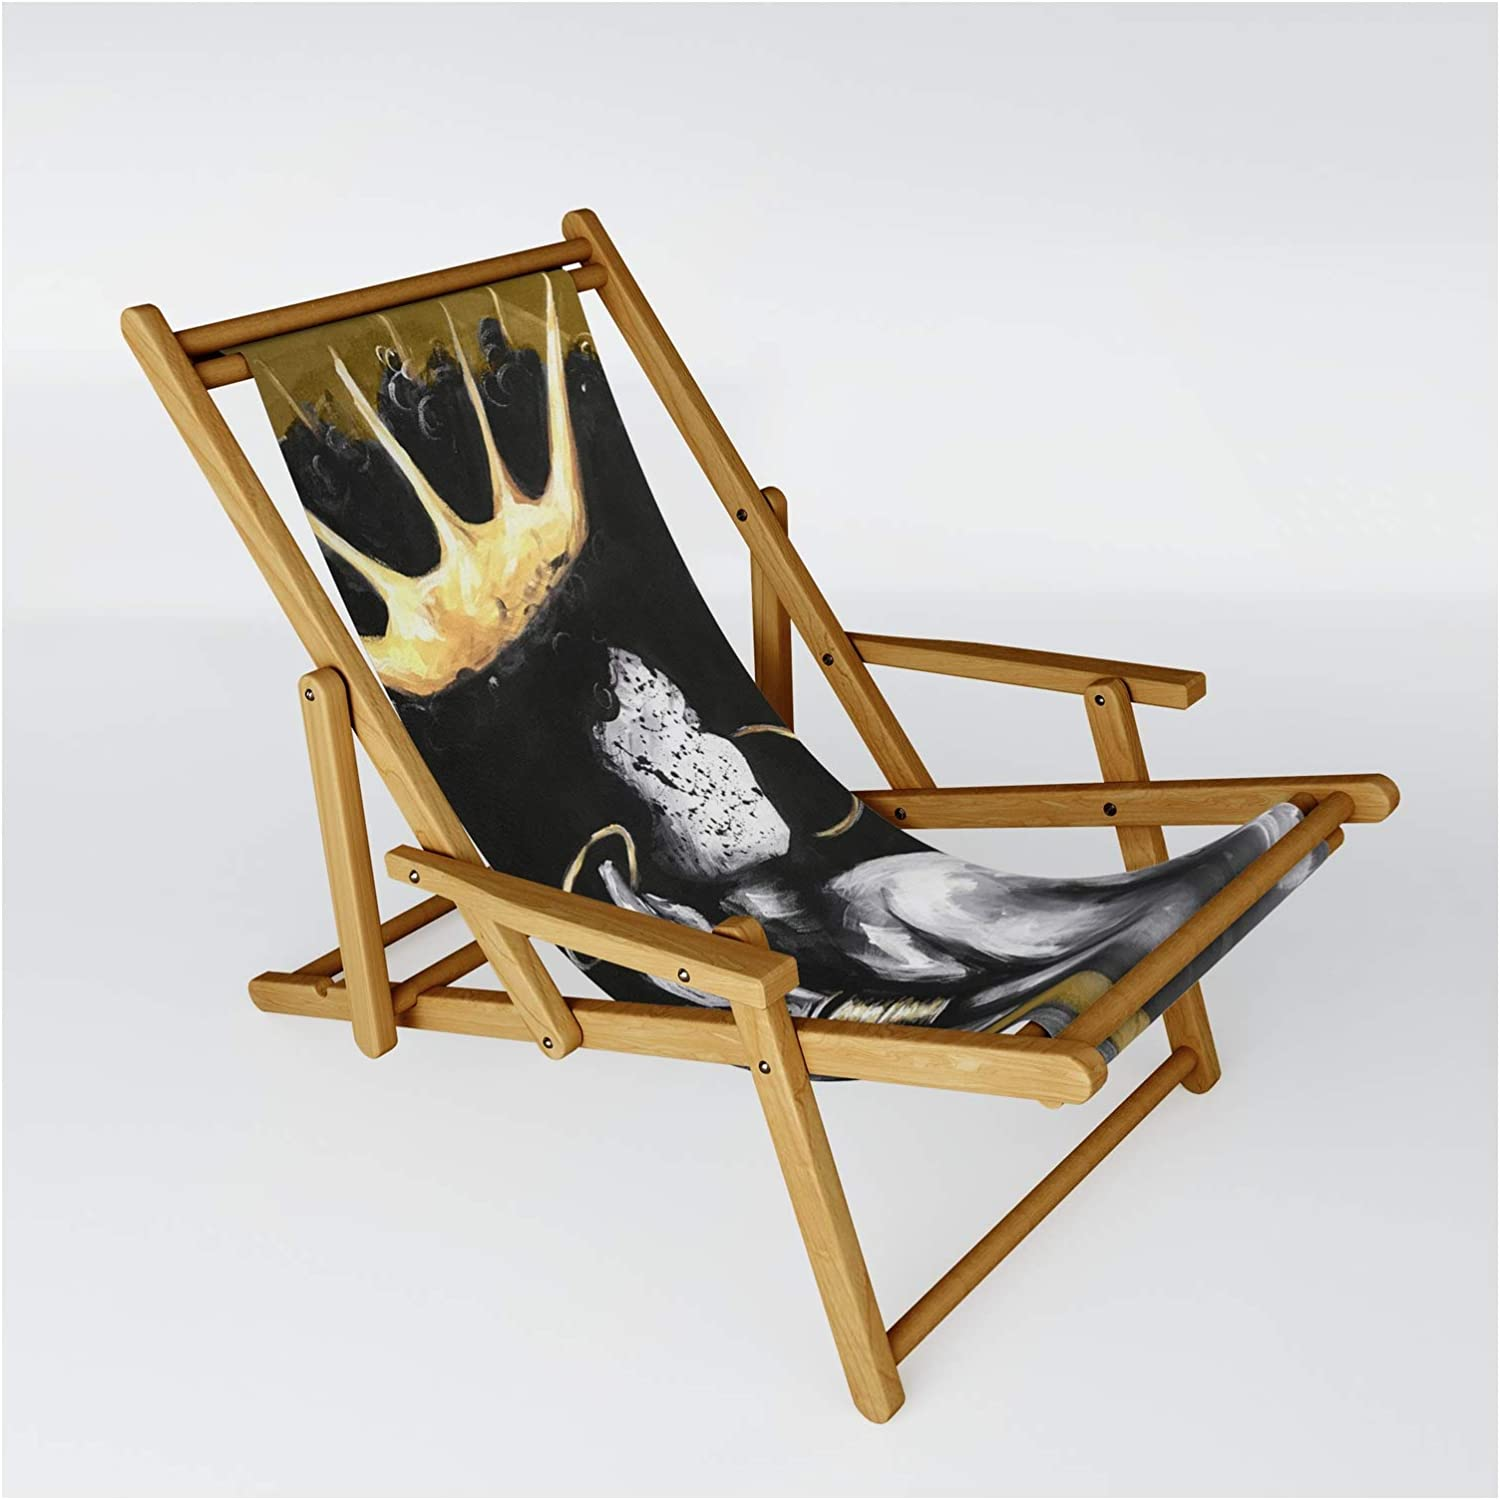 Society6 Naturally Queen Vi Gold Sling Max 55% OFF by wholesale on Chair Dacre8iveone